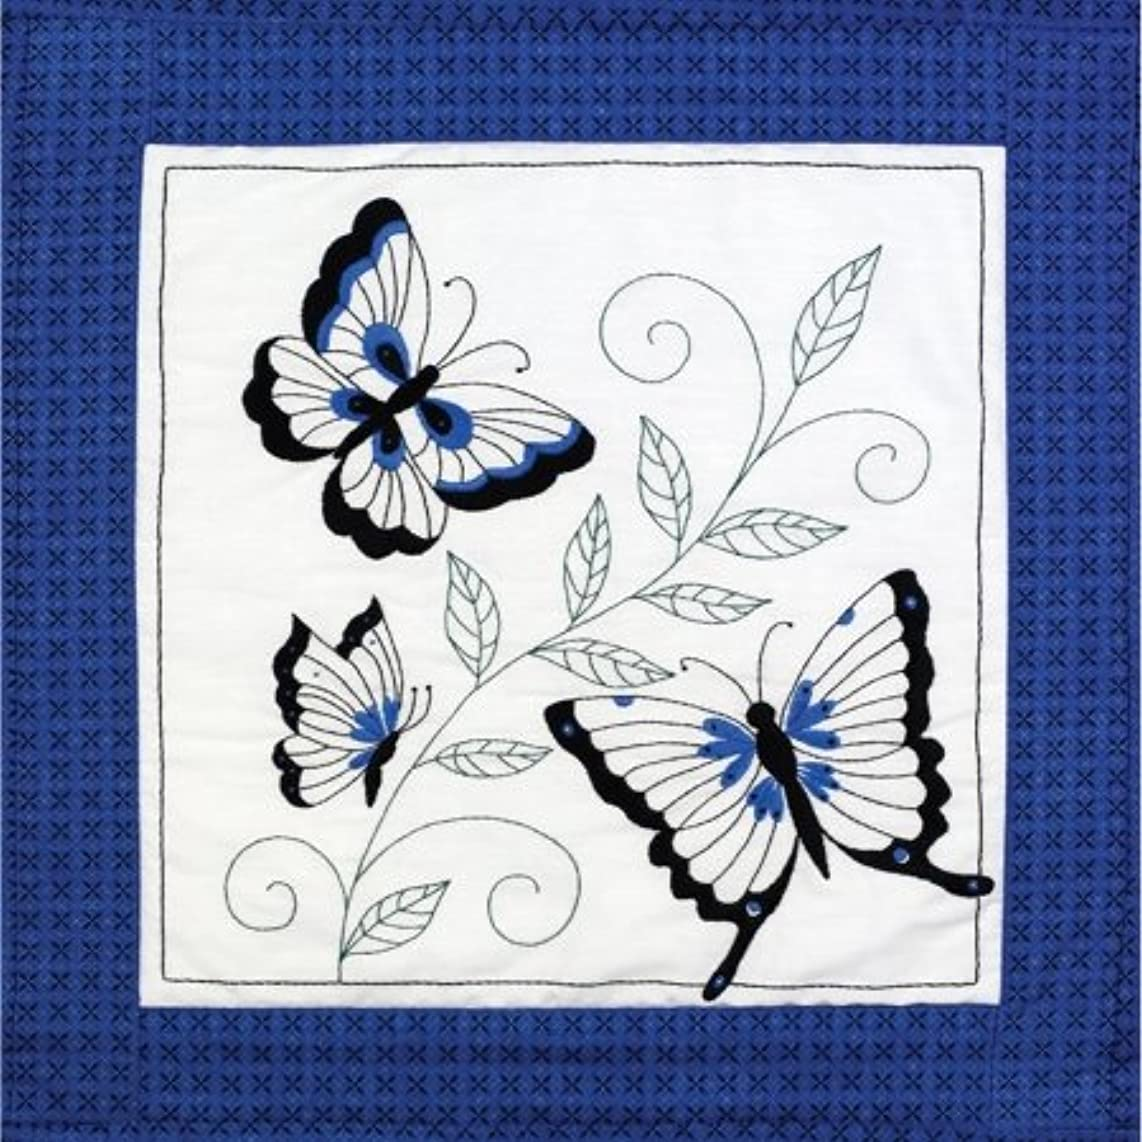 Janlynn 21-1458 Butterfly Quilt Blocks Stamped Embroidery-15X15 6/Pkg